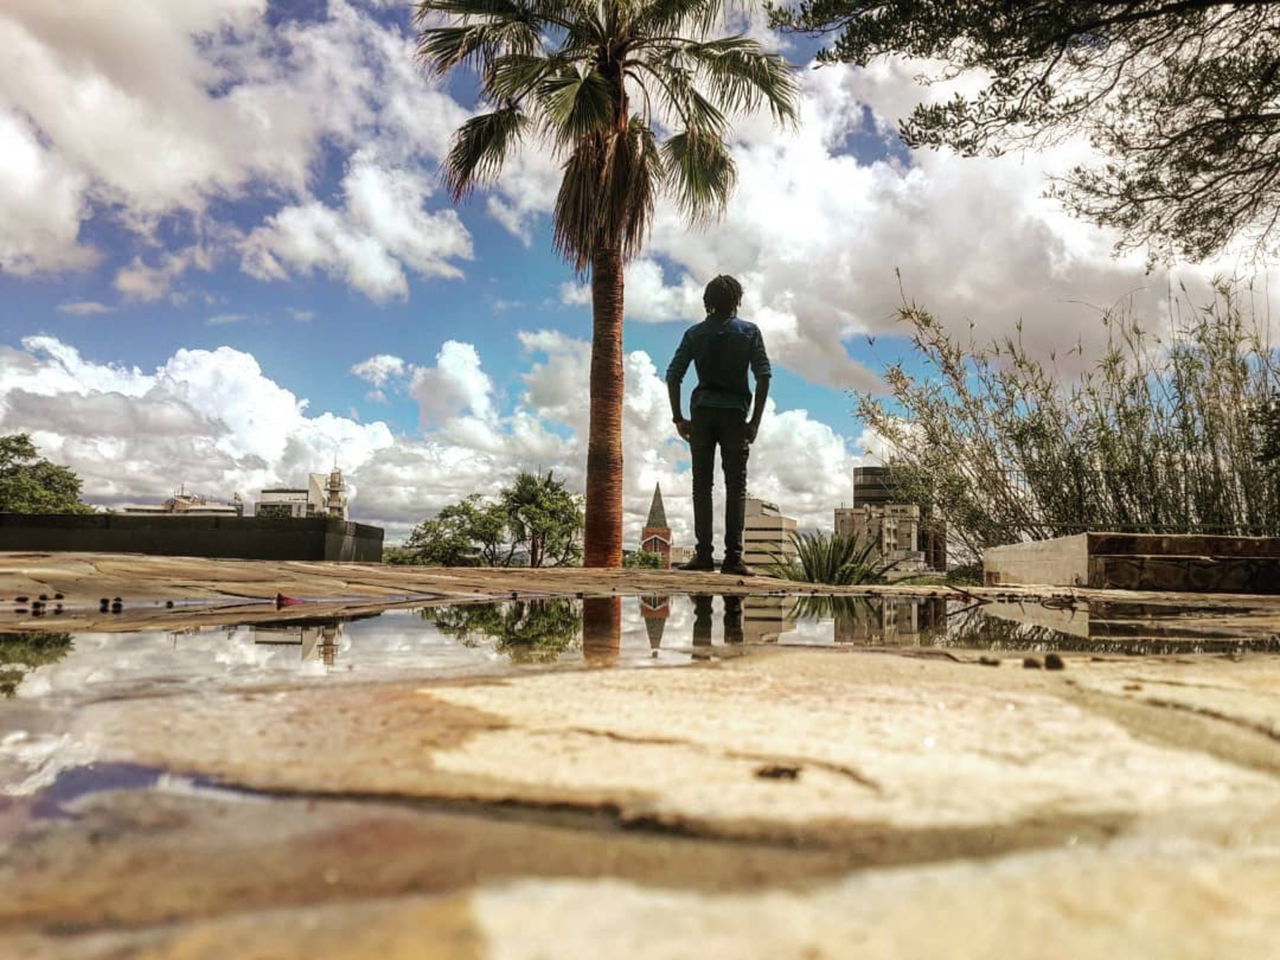 cloud - sky, one person, full length, sky, tree, men, standing, nature, plant, rear view, real people, palm tree, day, leisure activity, water, lifestyles, tropical climate, outdoors, adult